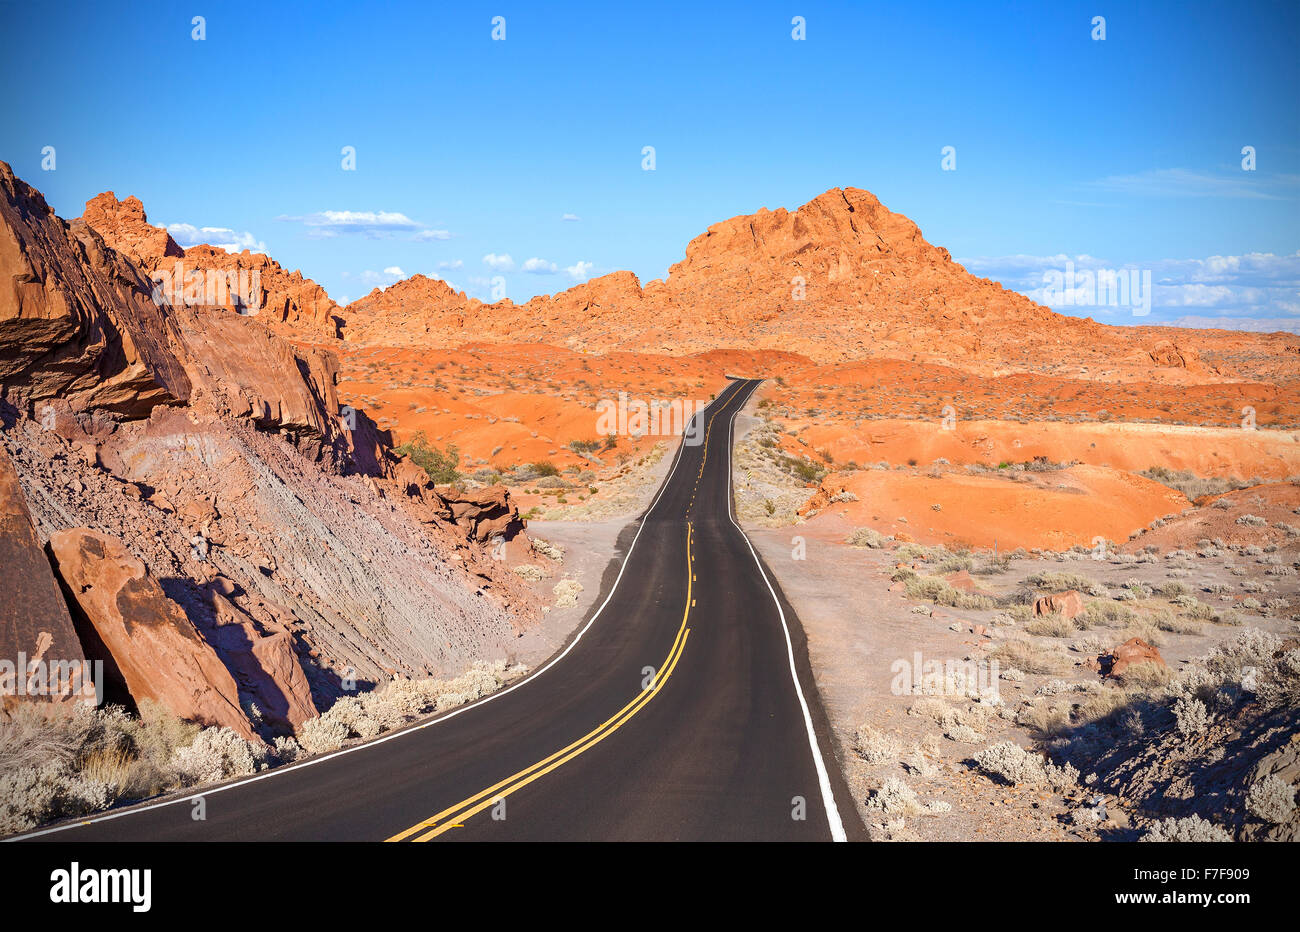 Winding desert highway, travel adventure concept, Valley of Fire State Park, Nevada, USA. - Stock Image